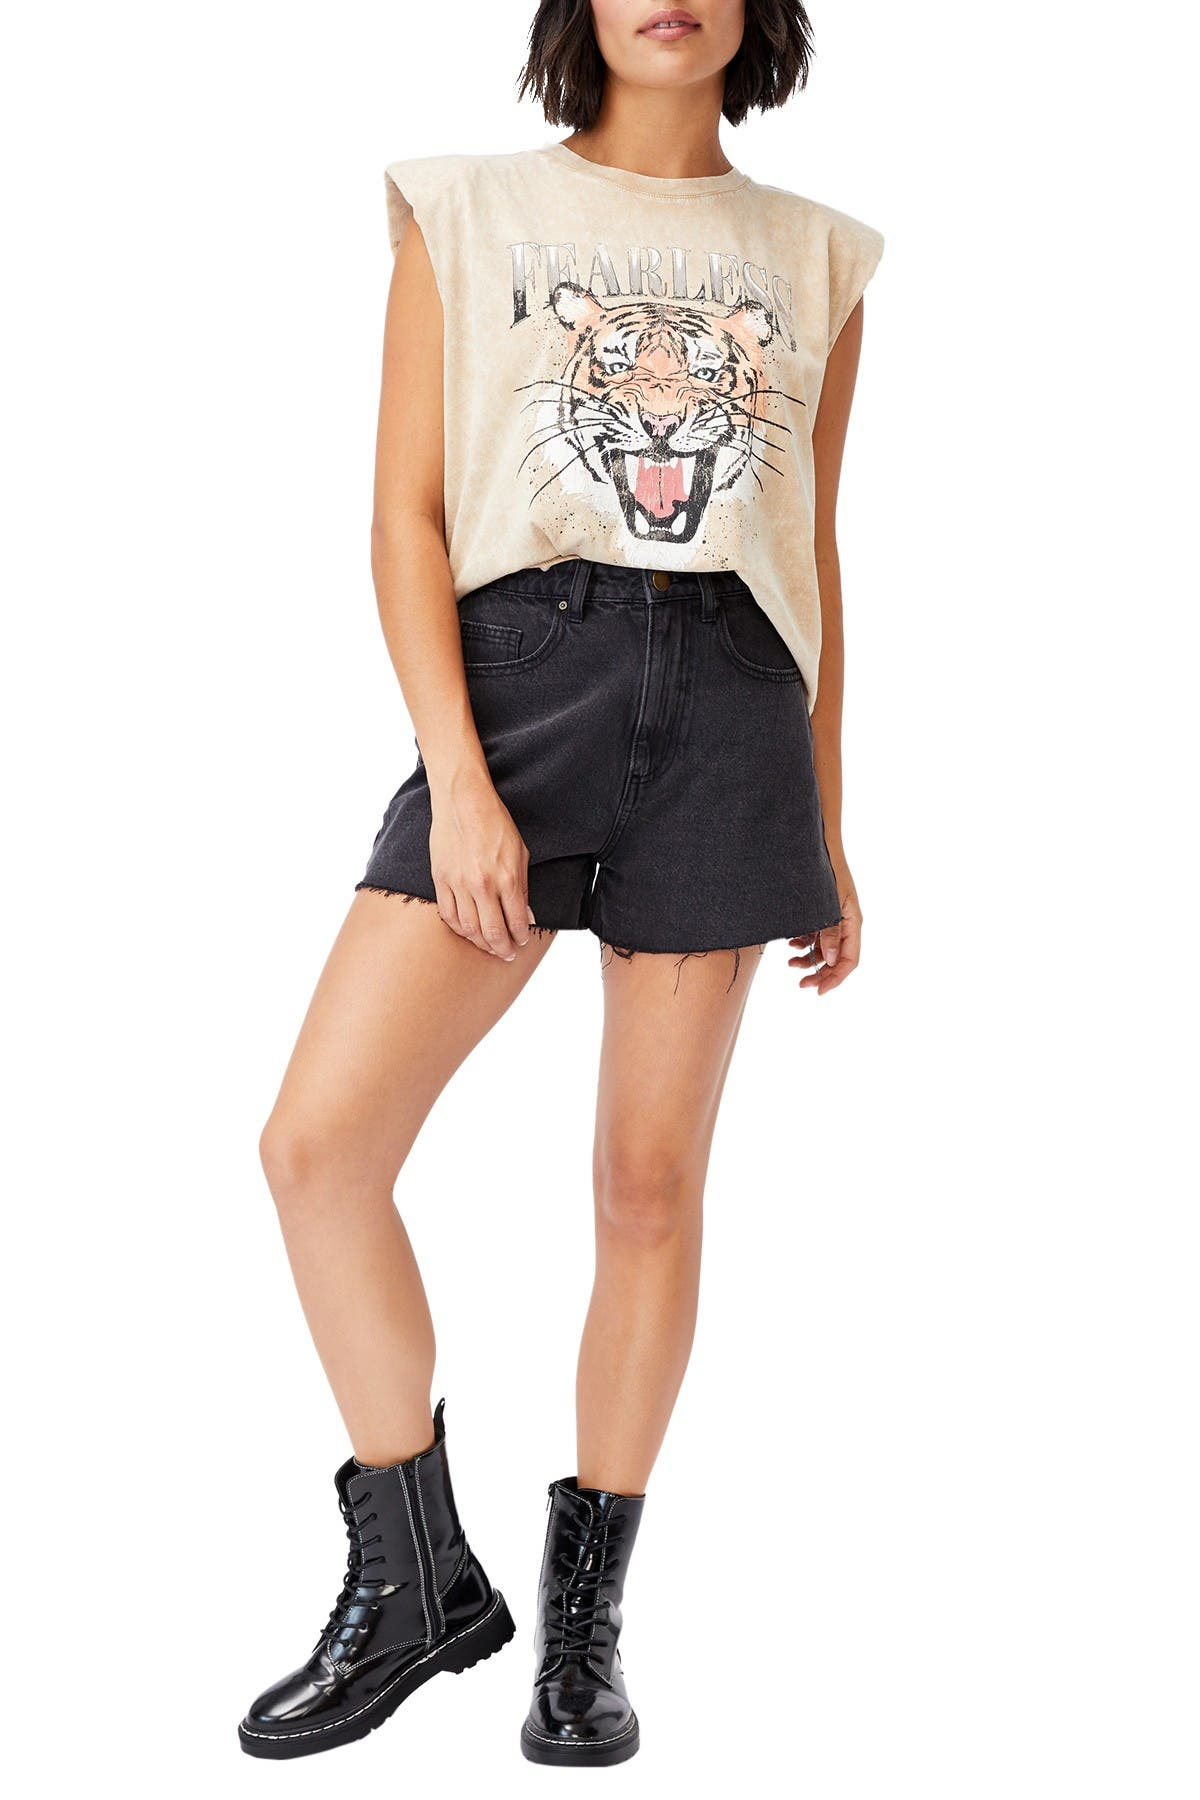 Image of Cotton On Padded Graphic Muscle Tank